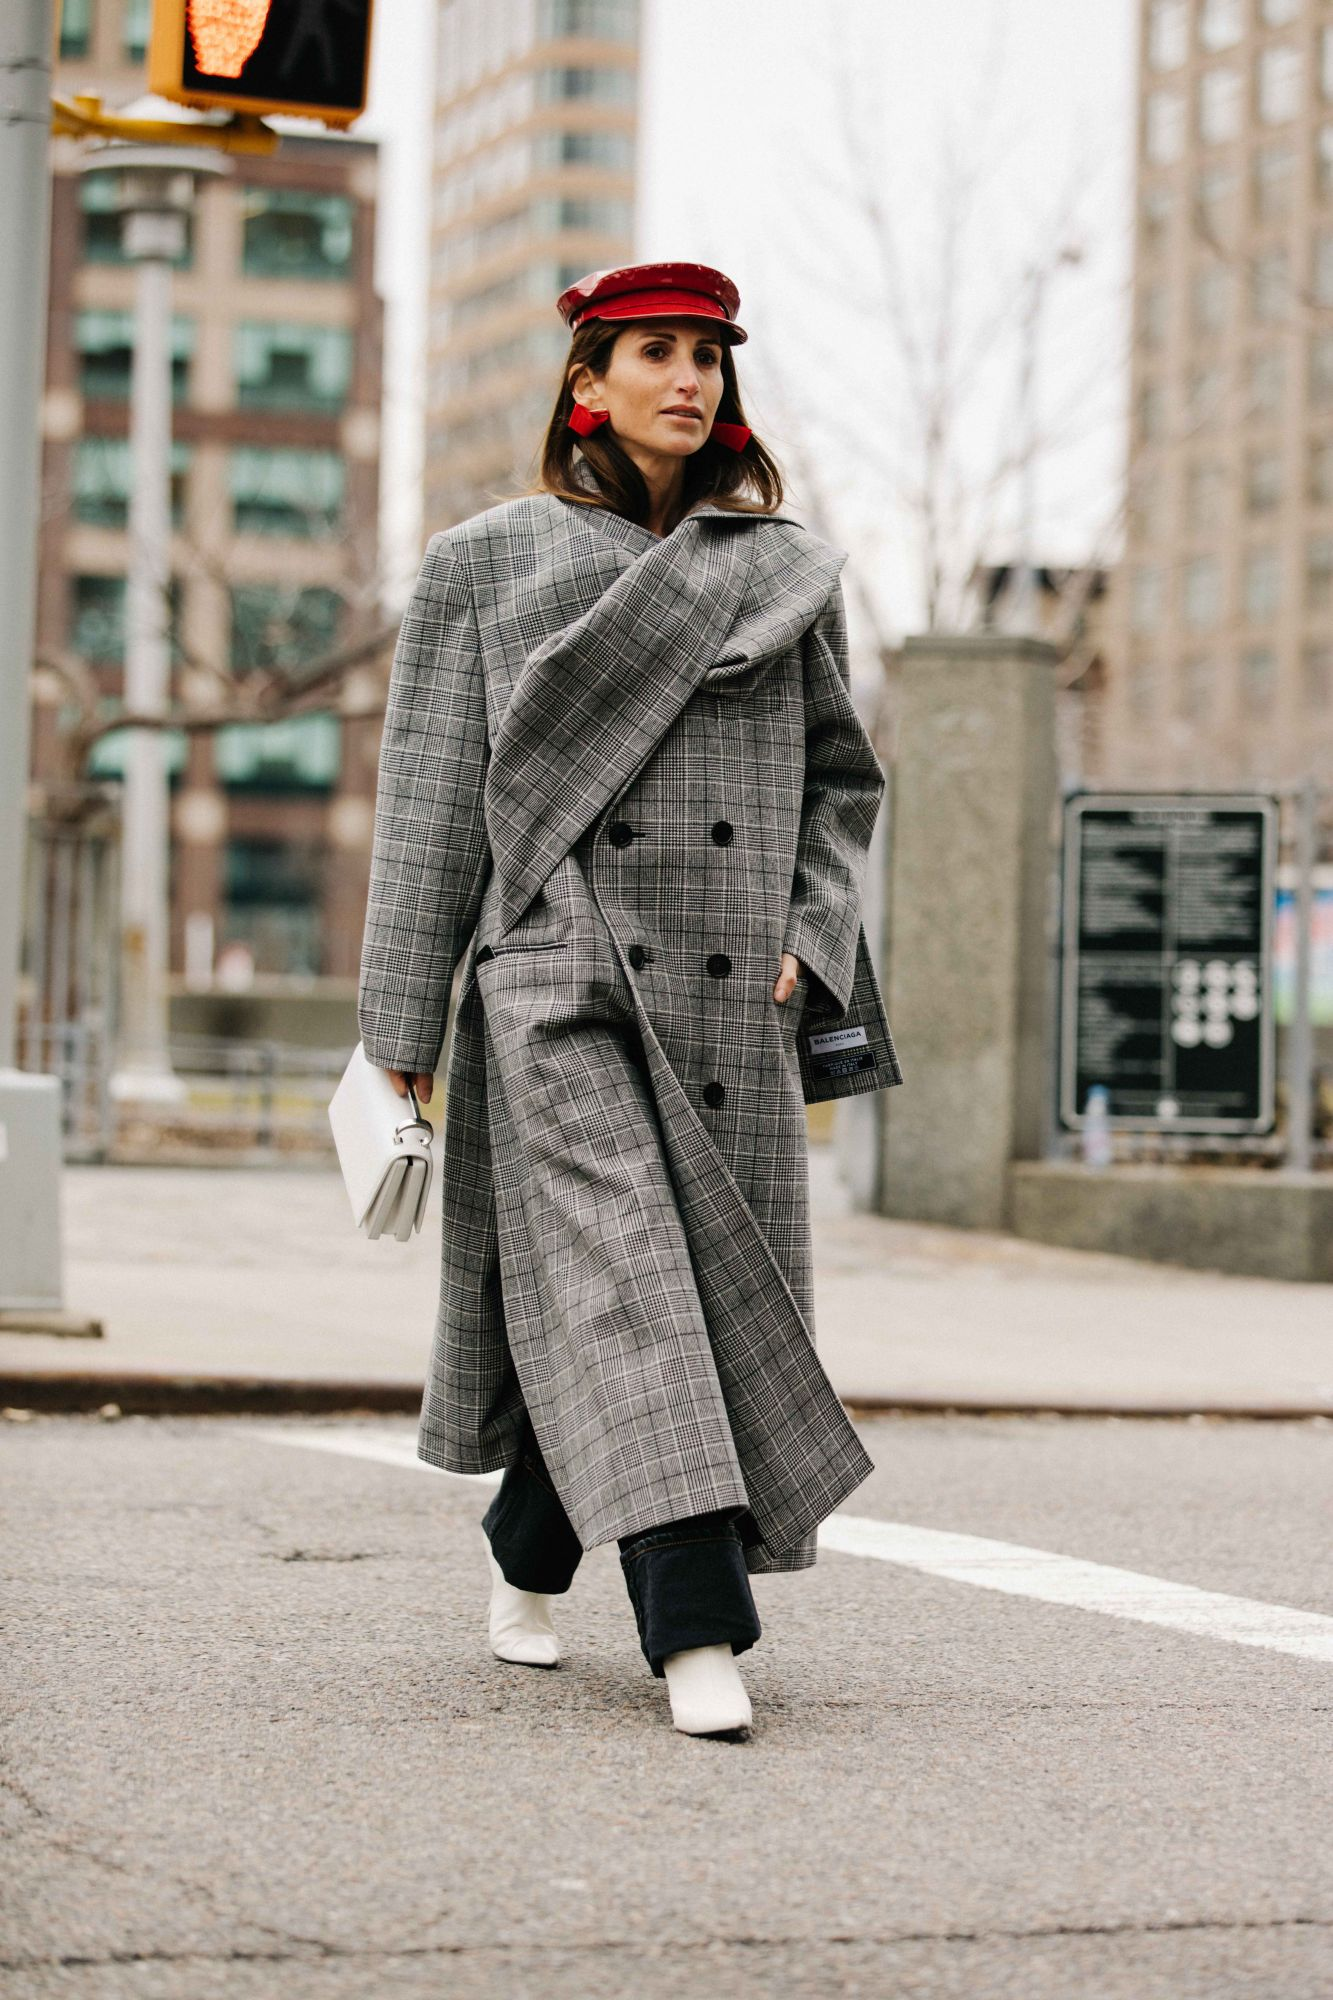 The Best Street Style Trends From New York Fashion Week That You Can Wear Right Now